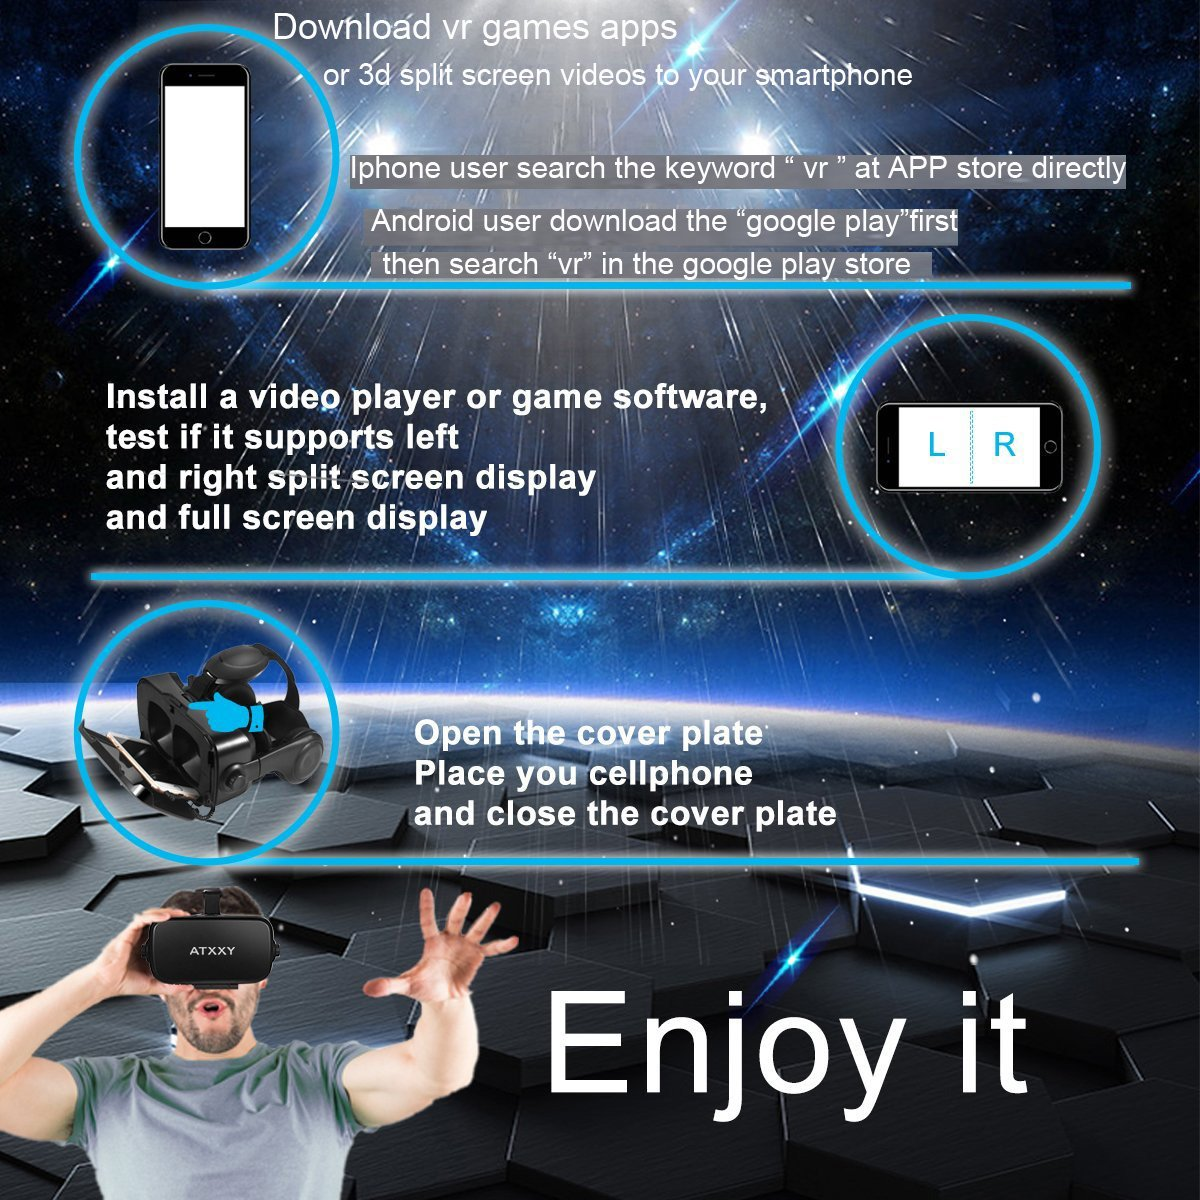 ATXXY VR Headset with Remote Controller 3D VR Glasses Virtual Reality Headset with Stereo Headphone and Adjustable Headstrap for 3D Movies & VR Games, Fit for 4.0-6.4 inch IOS/Android Smartphone by ATXXY (Image #6)